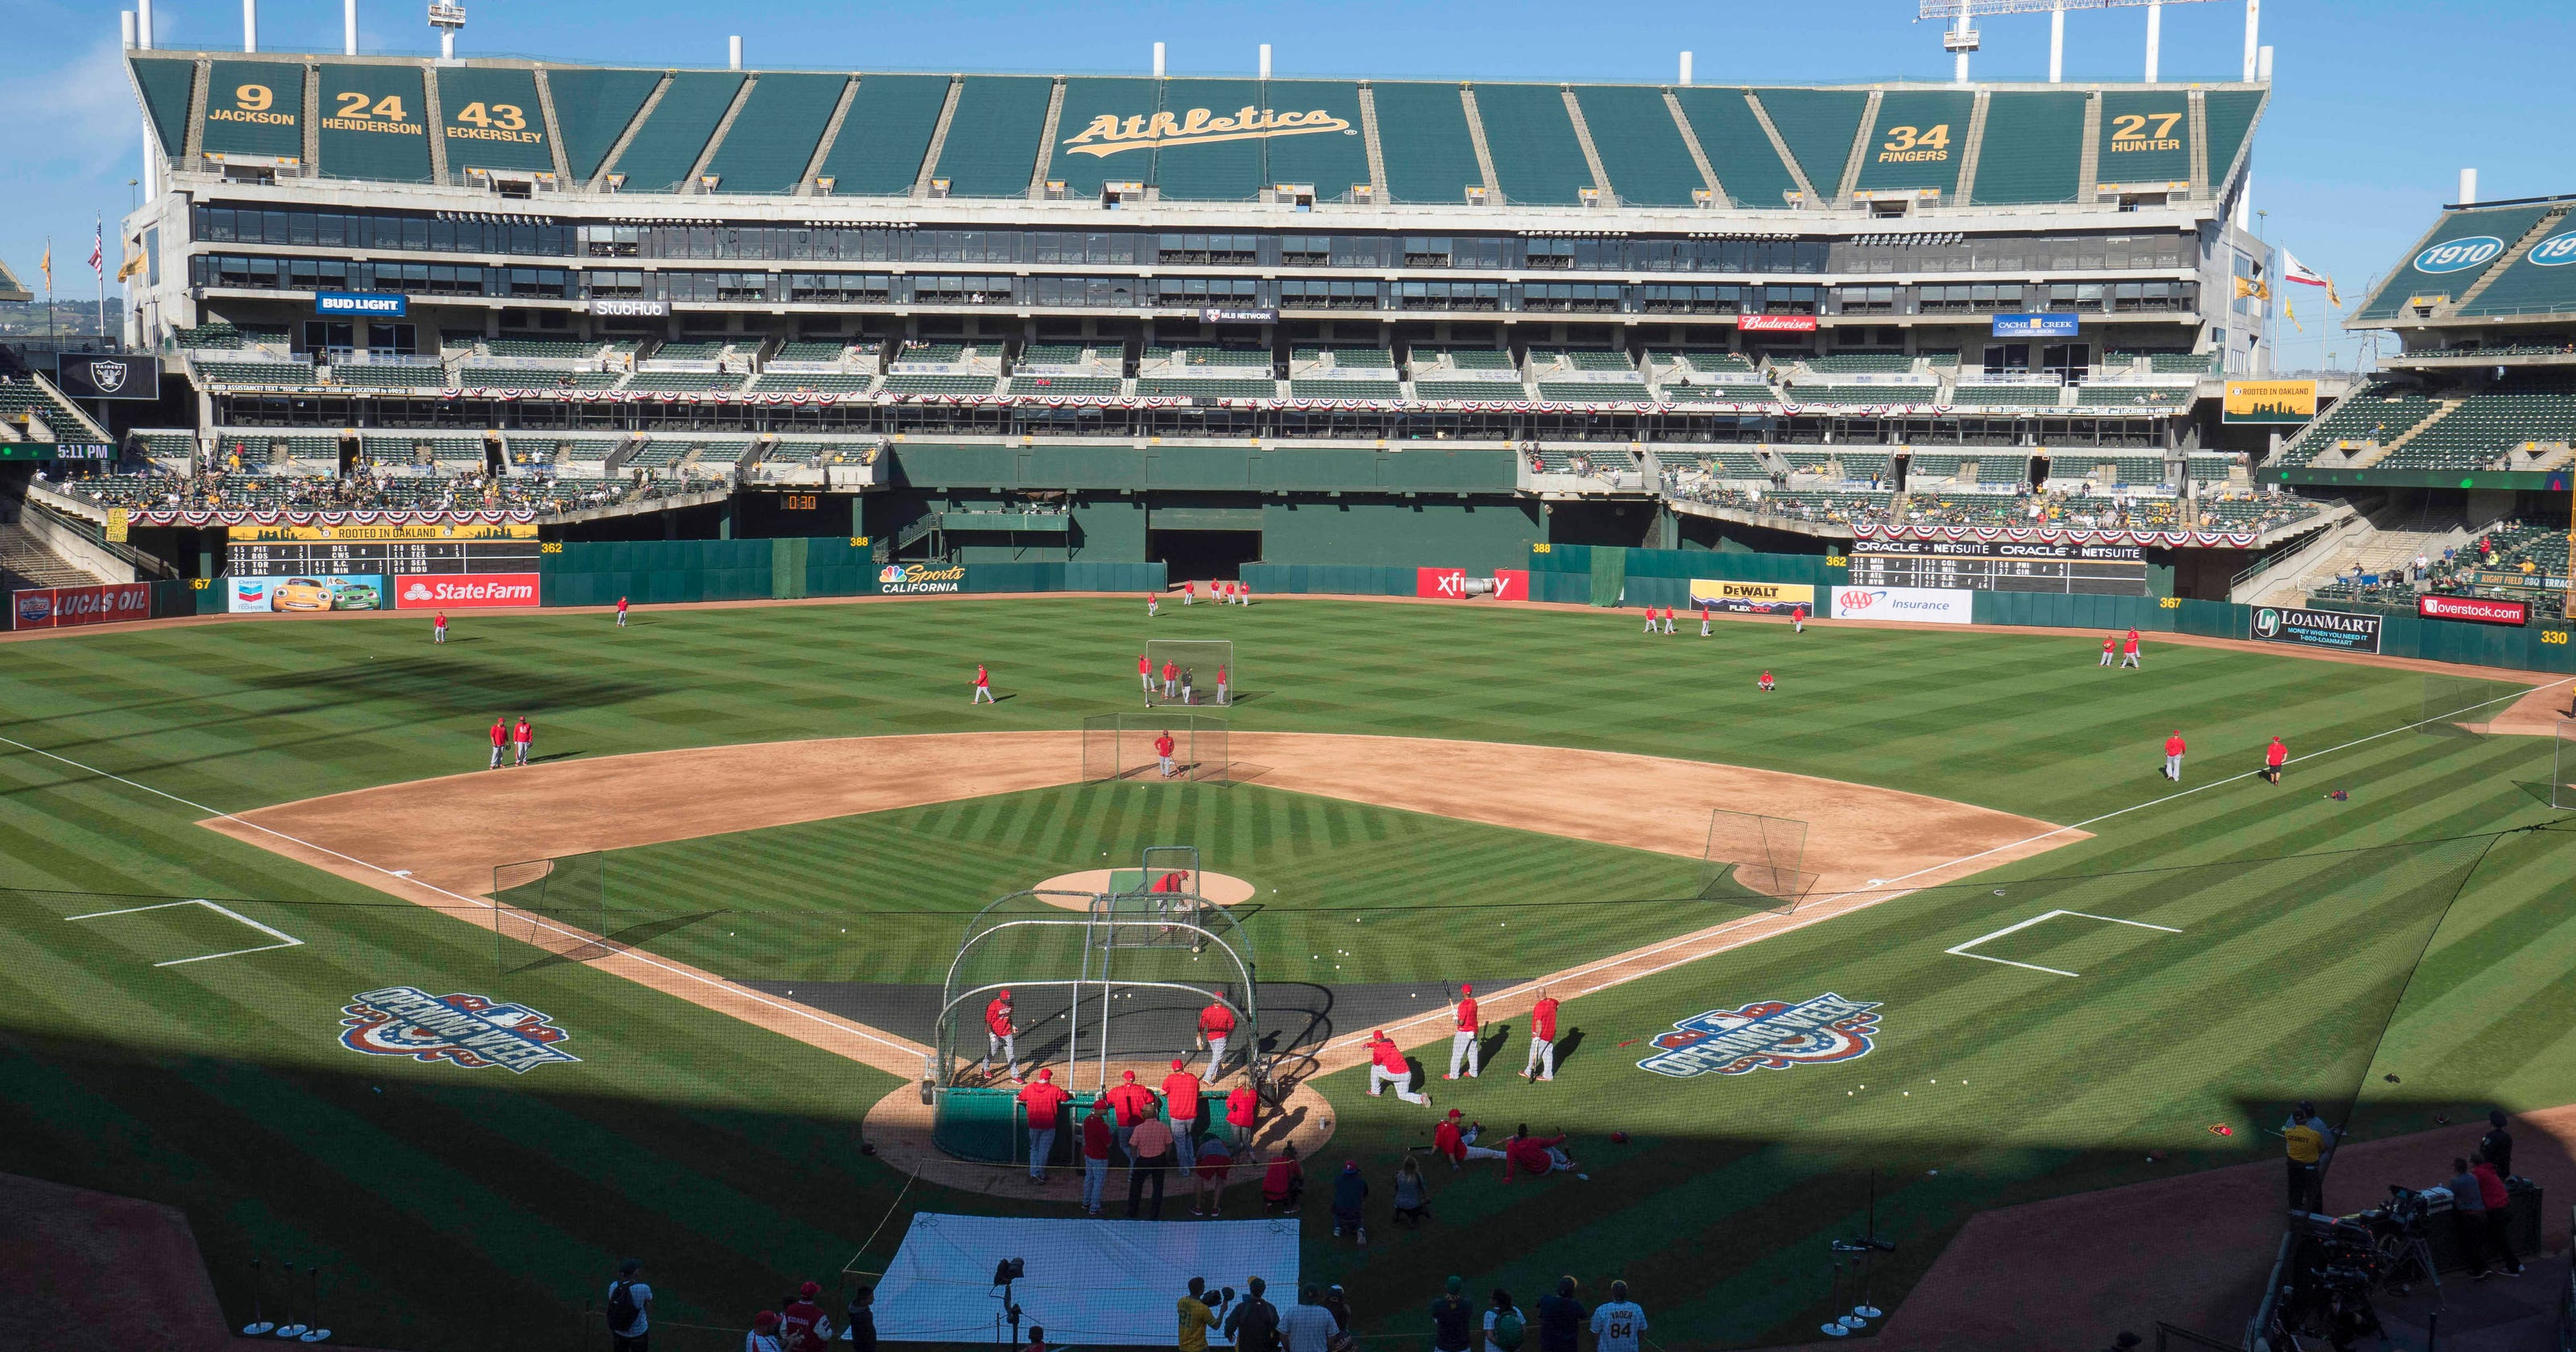 cfe2b1a2d Free baseball  Oakland A s expect full house of 65